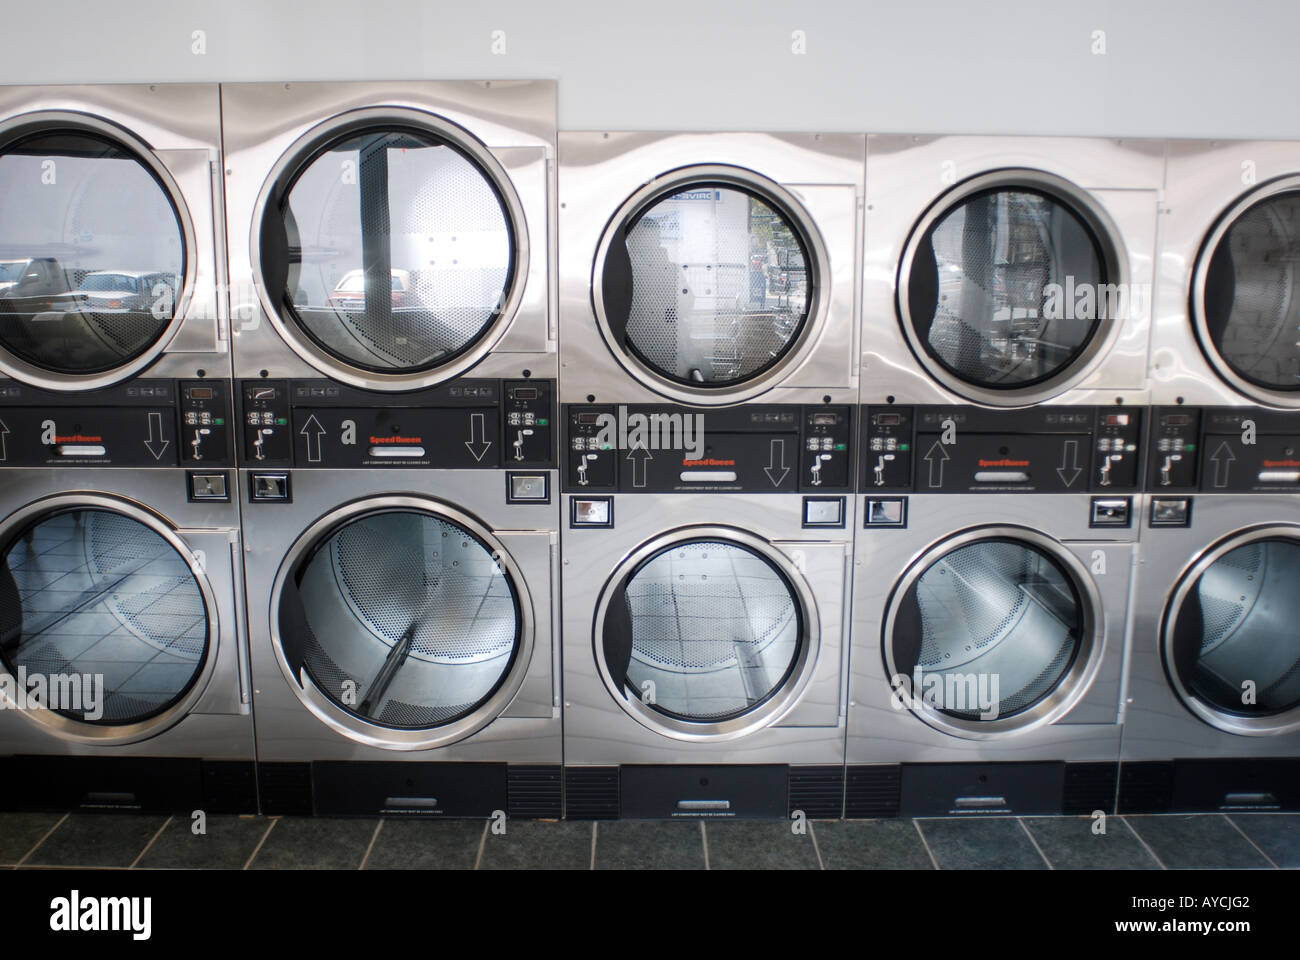 Rows of Coin Operated Laundromat dryers - Stock Image